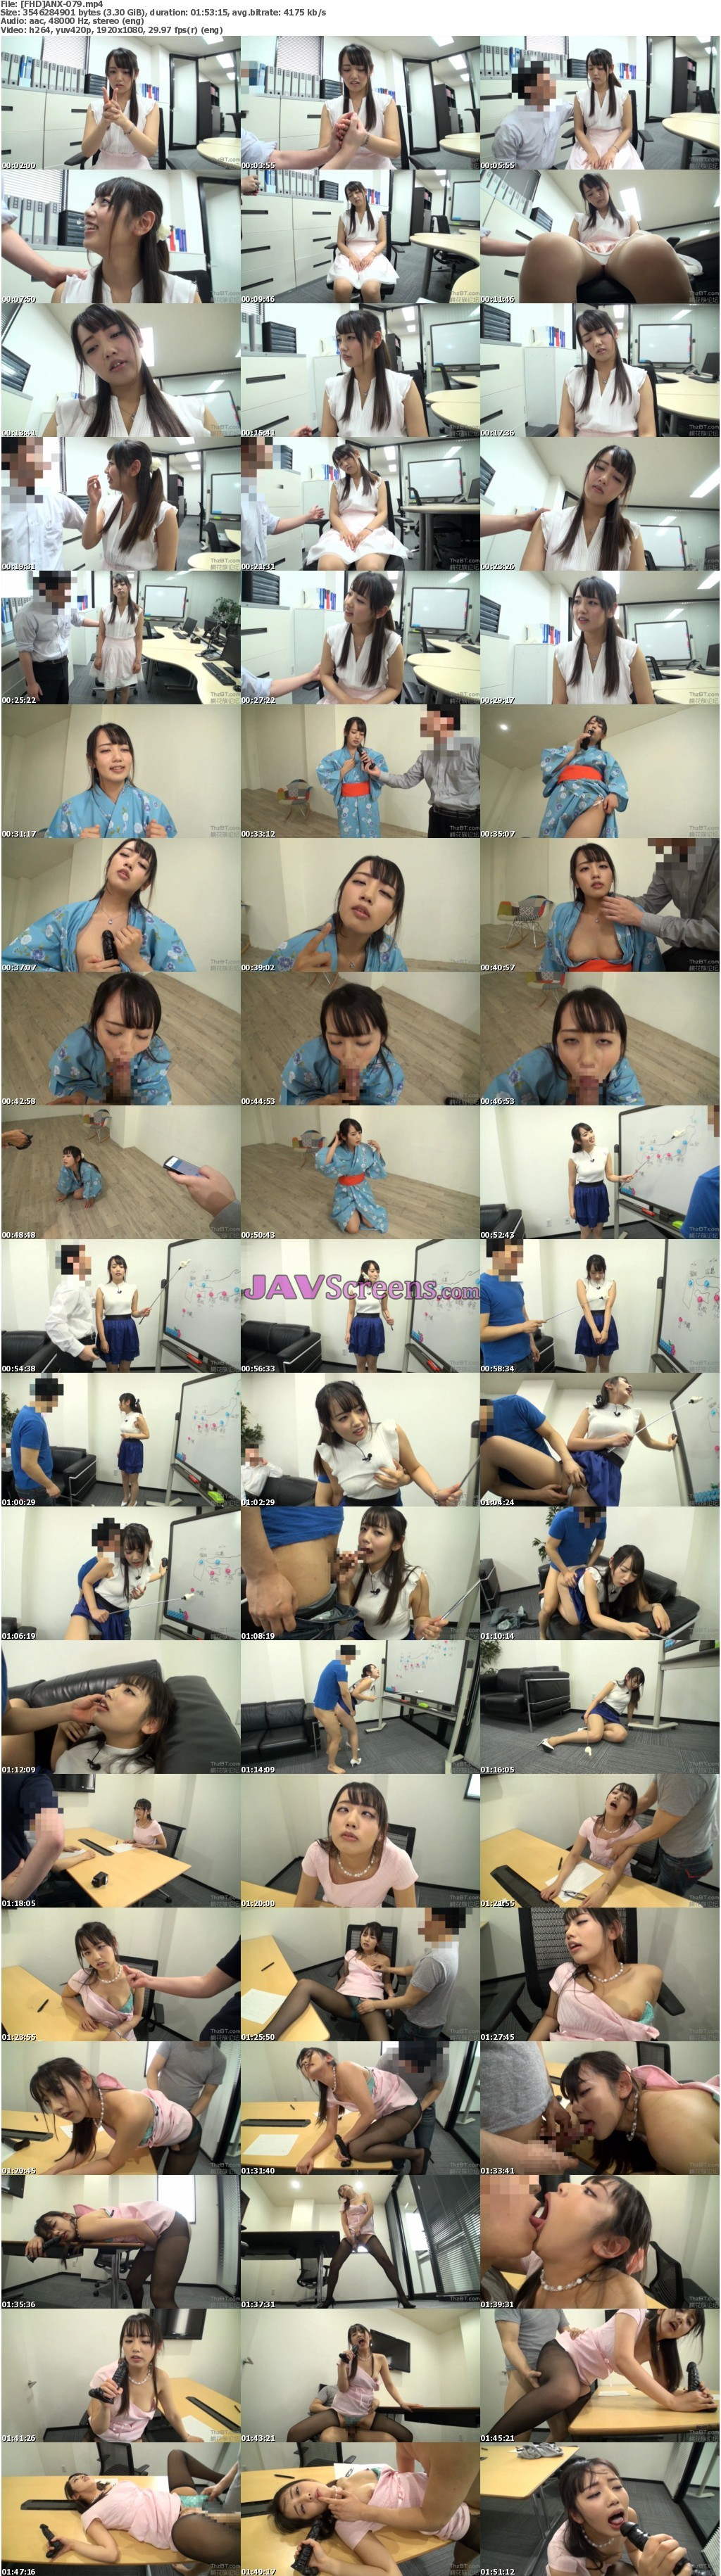 ANX-079.jpg - JAV Screenshot